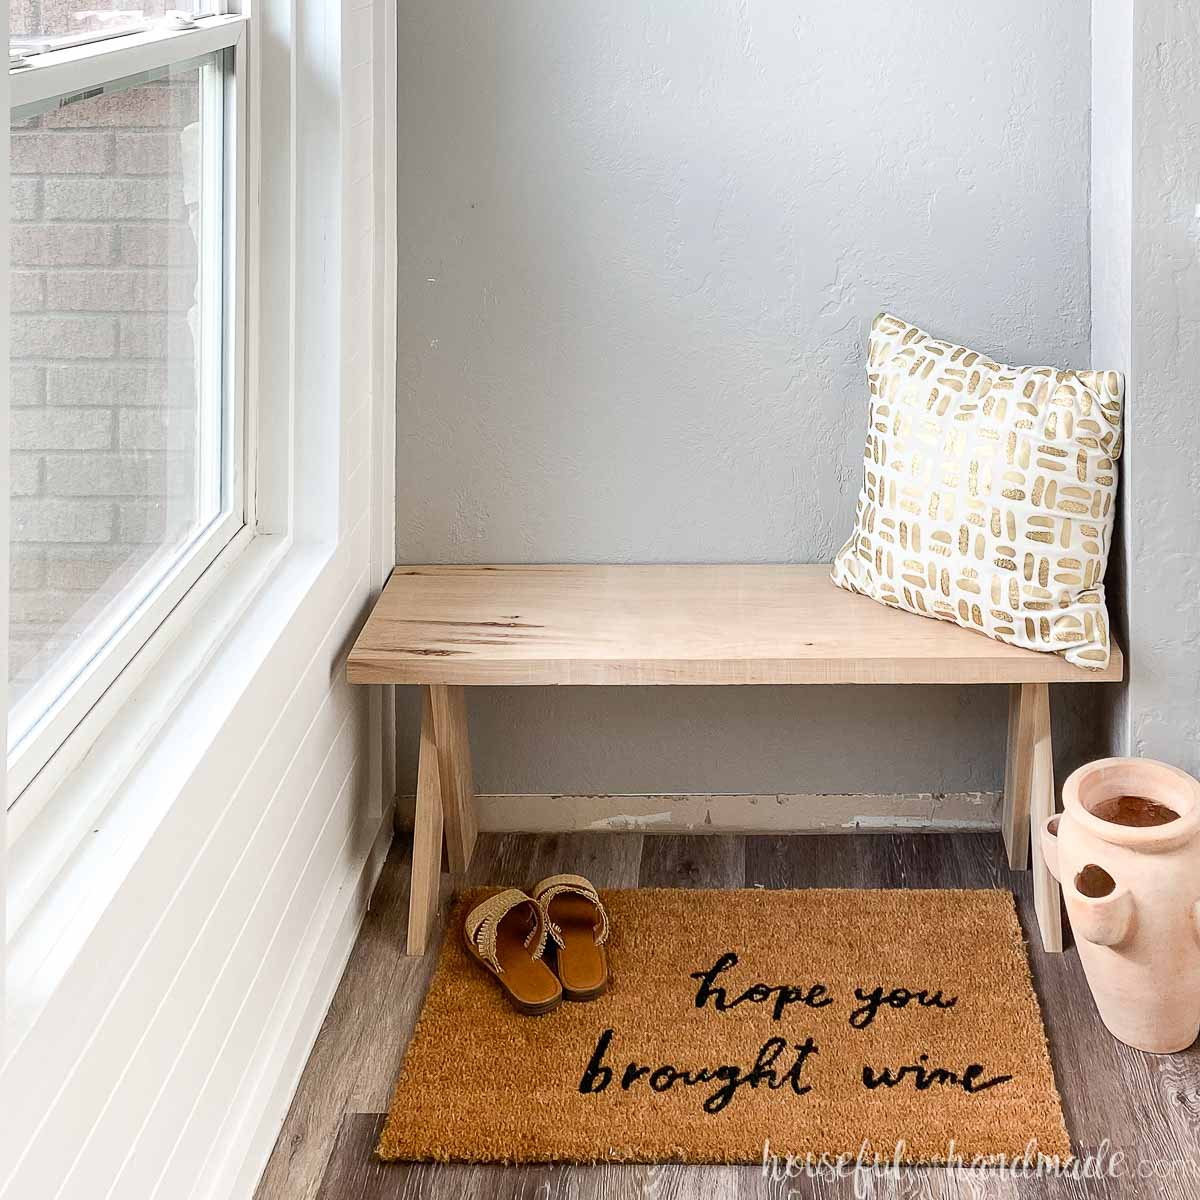 """DIY x-leg bench made from hickory wood in an entryway with driftwood vinyl flooring and """"hope you brought wine"""" rug in front with accessories."""